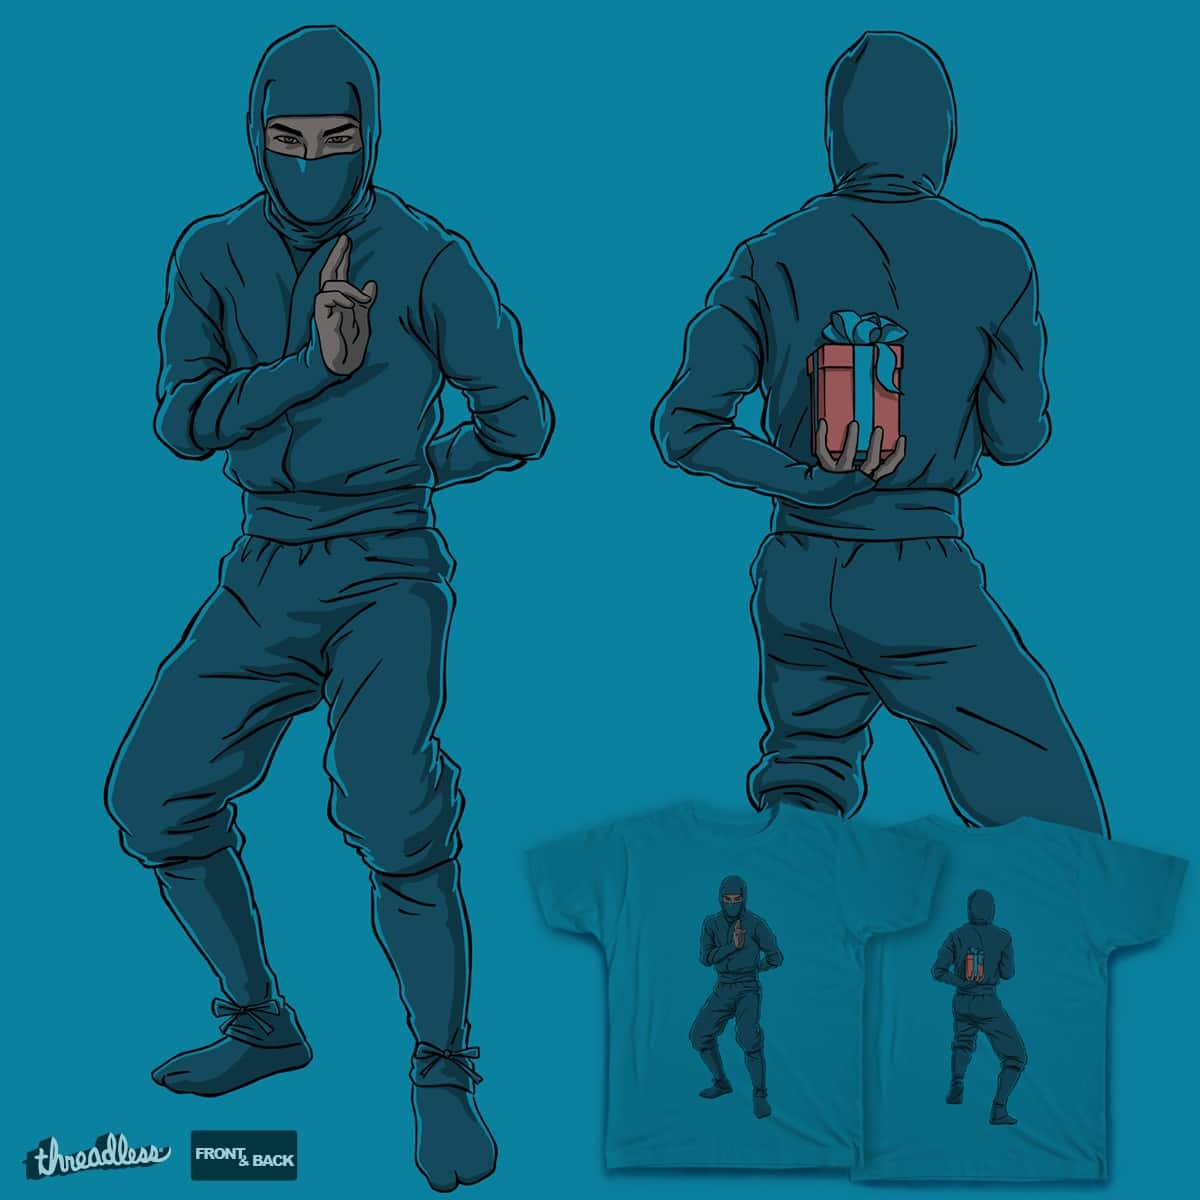 Ninja Gifter by Moutchy on Threadless